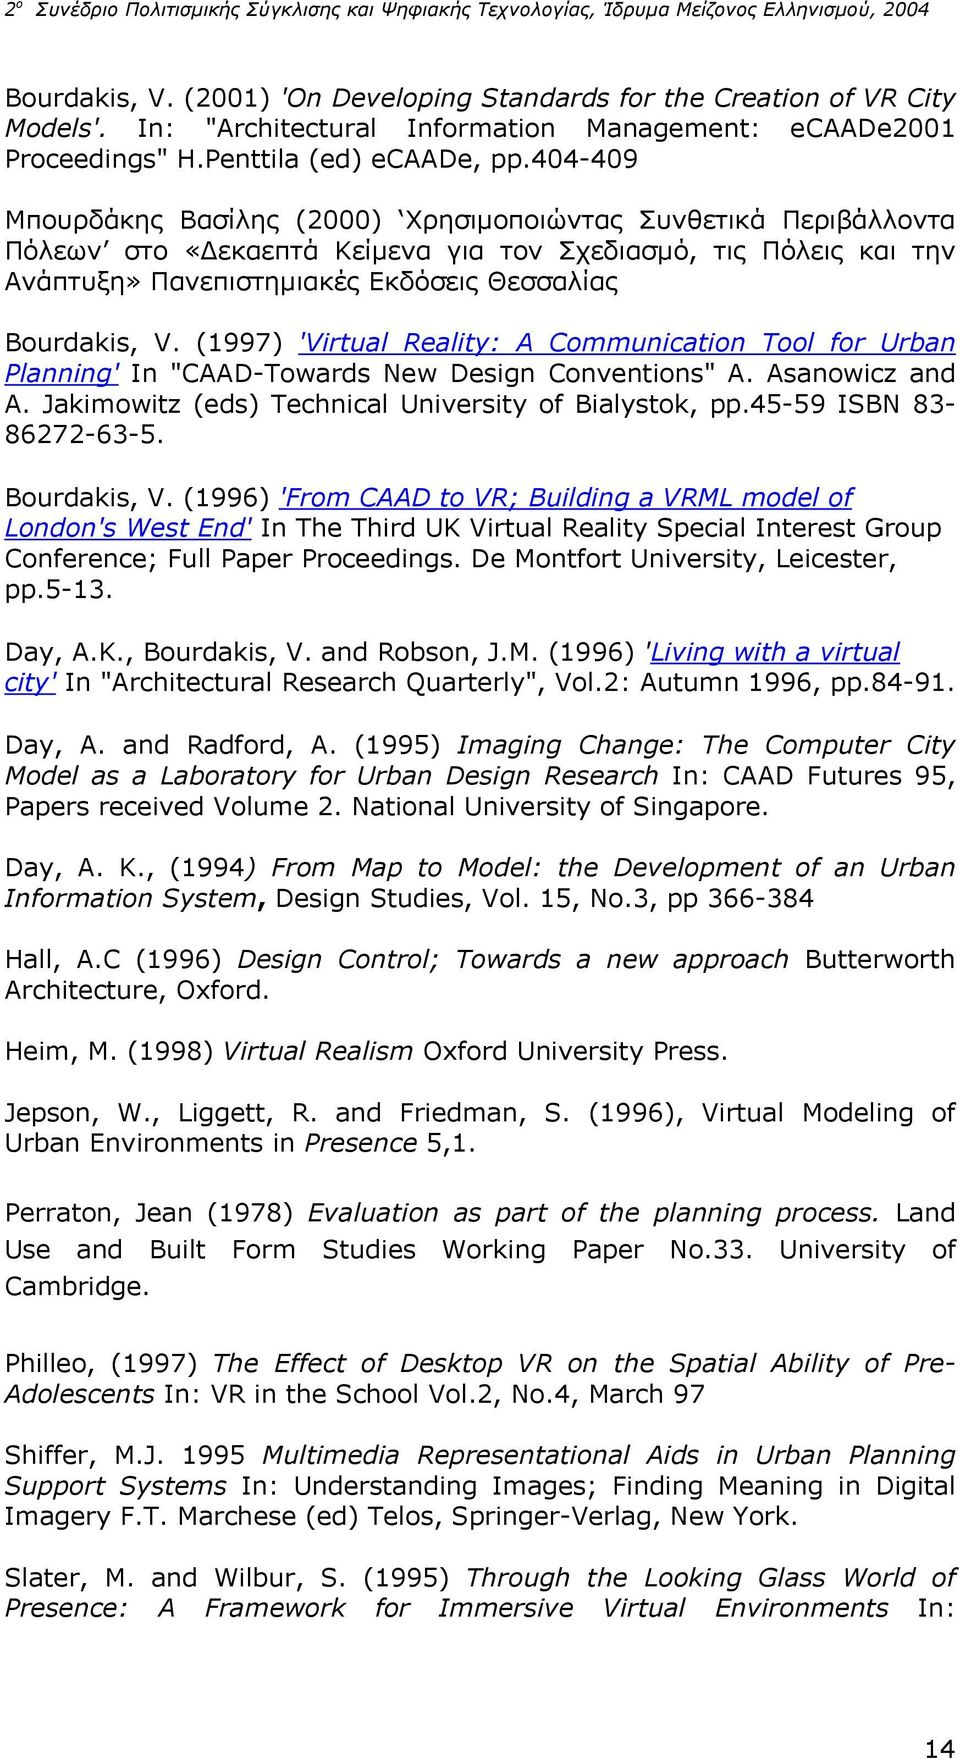 "(1997) 'Virtual Reality: A Communication Tool for Urban Planning' In ""CAAD-Towards New Design Conventions"" A. Asanowicz and A. Jakimowitz (eds) Technical University of Bialystok, pp."